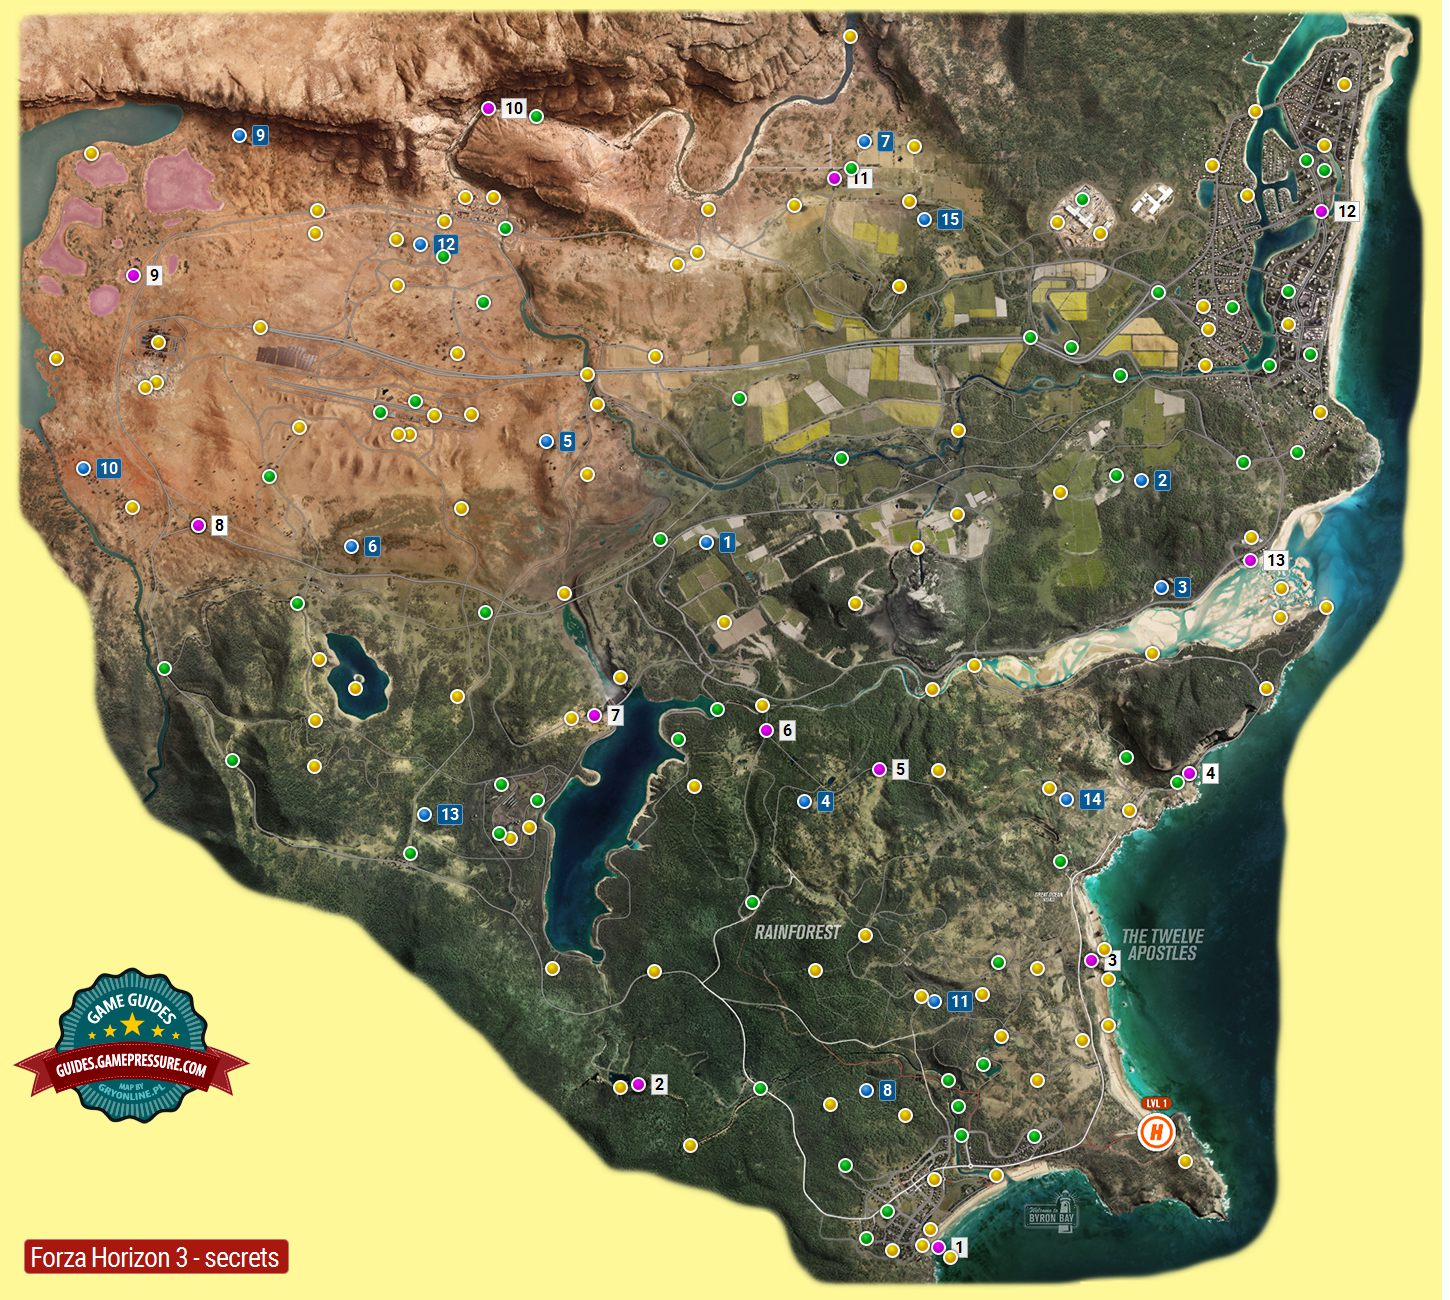 Carte Au Tresor Forza Horizon 3.Map Of Collectibles In Forza Horizon 3 Forza Horizon 3